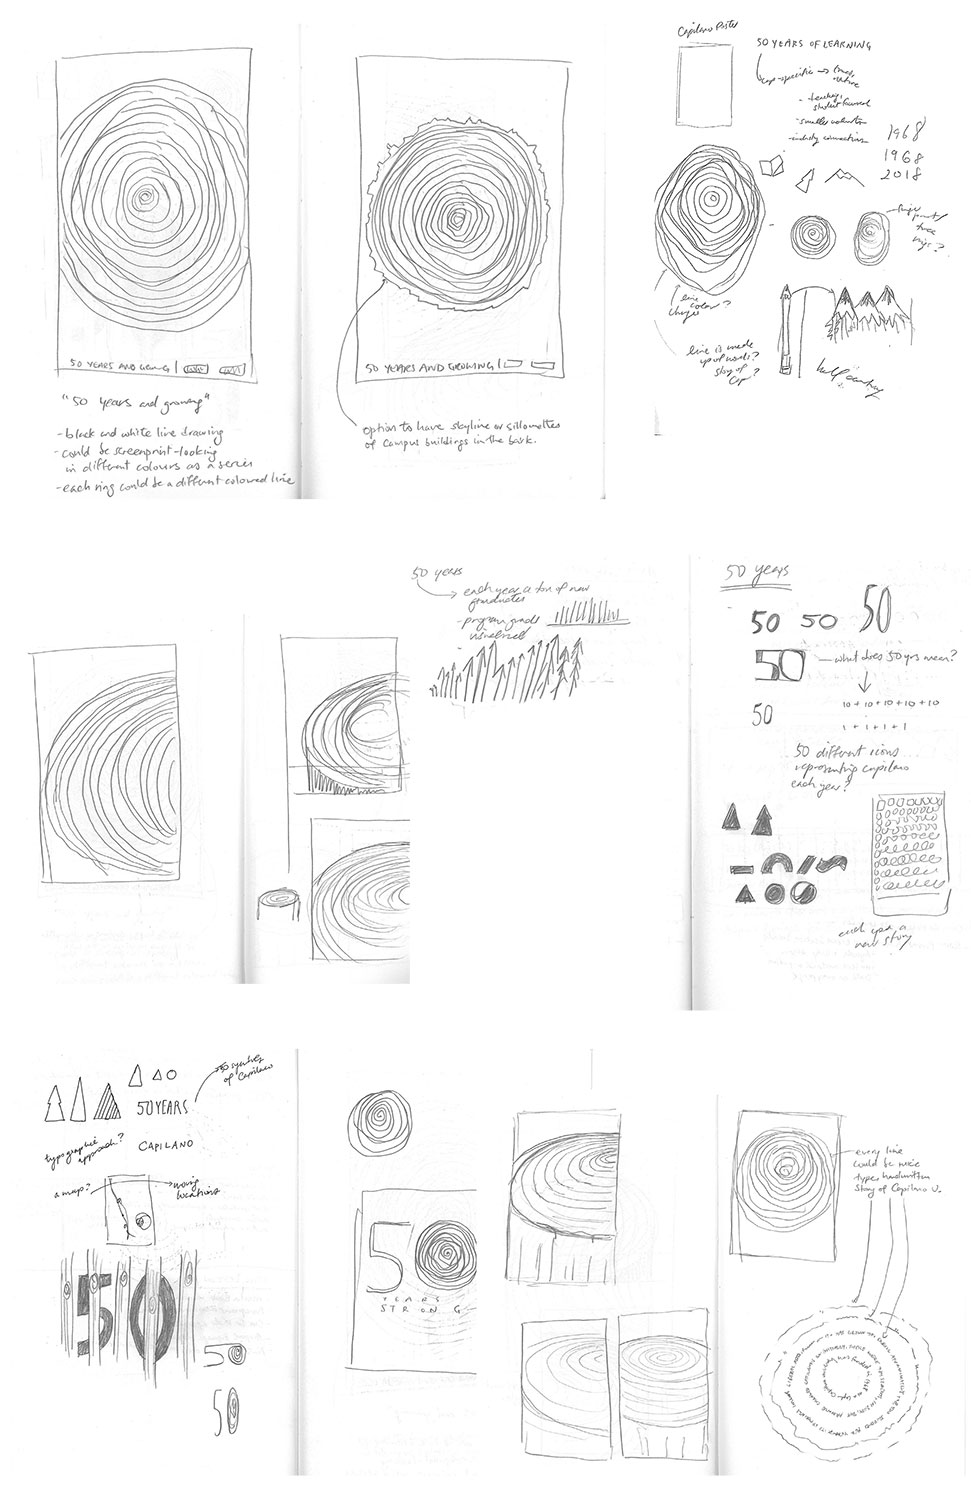 Process sketches